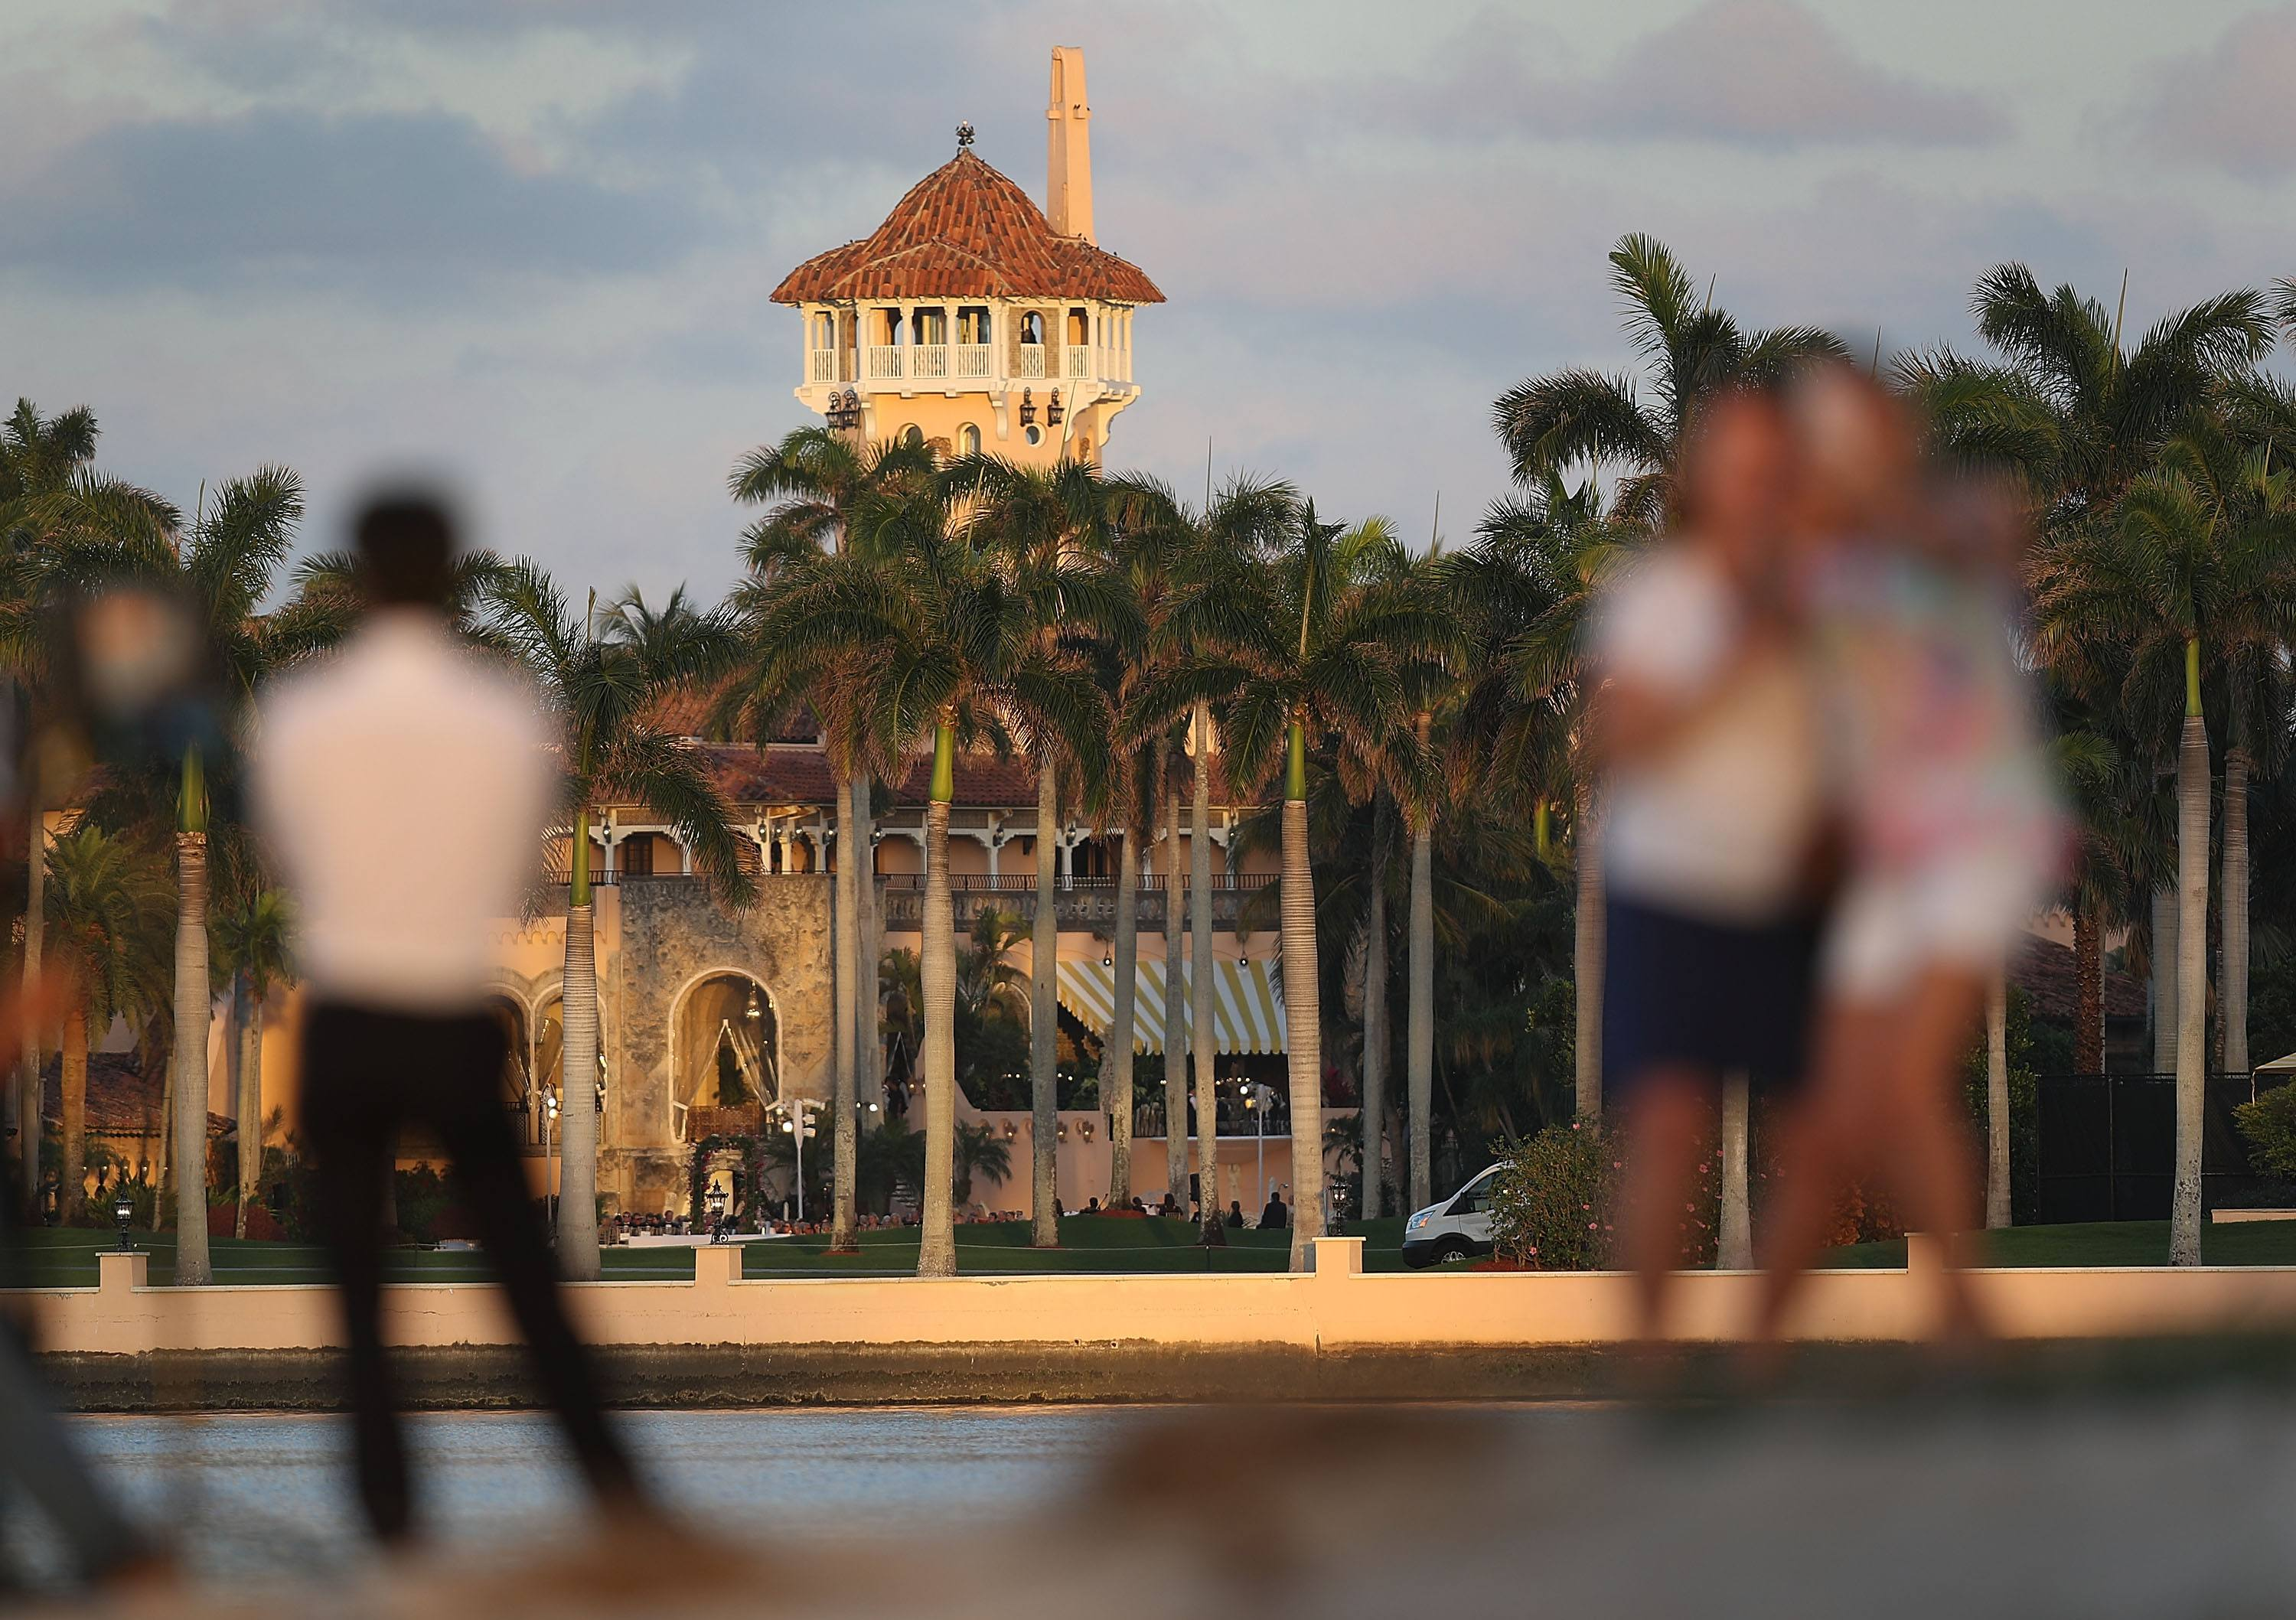 Donald Trump Mar-a-Lago Resort